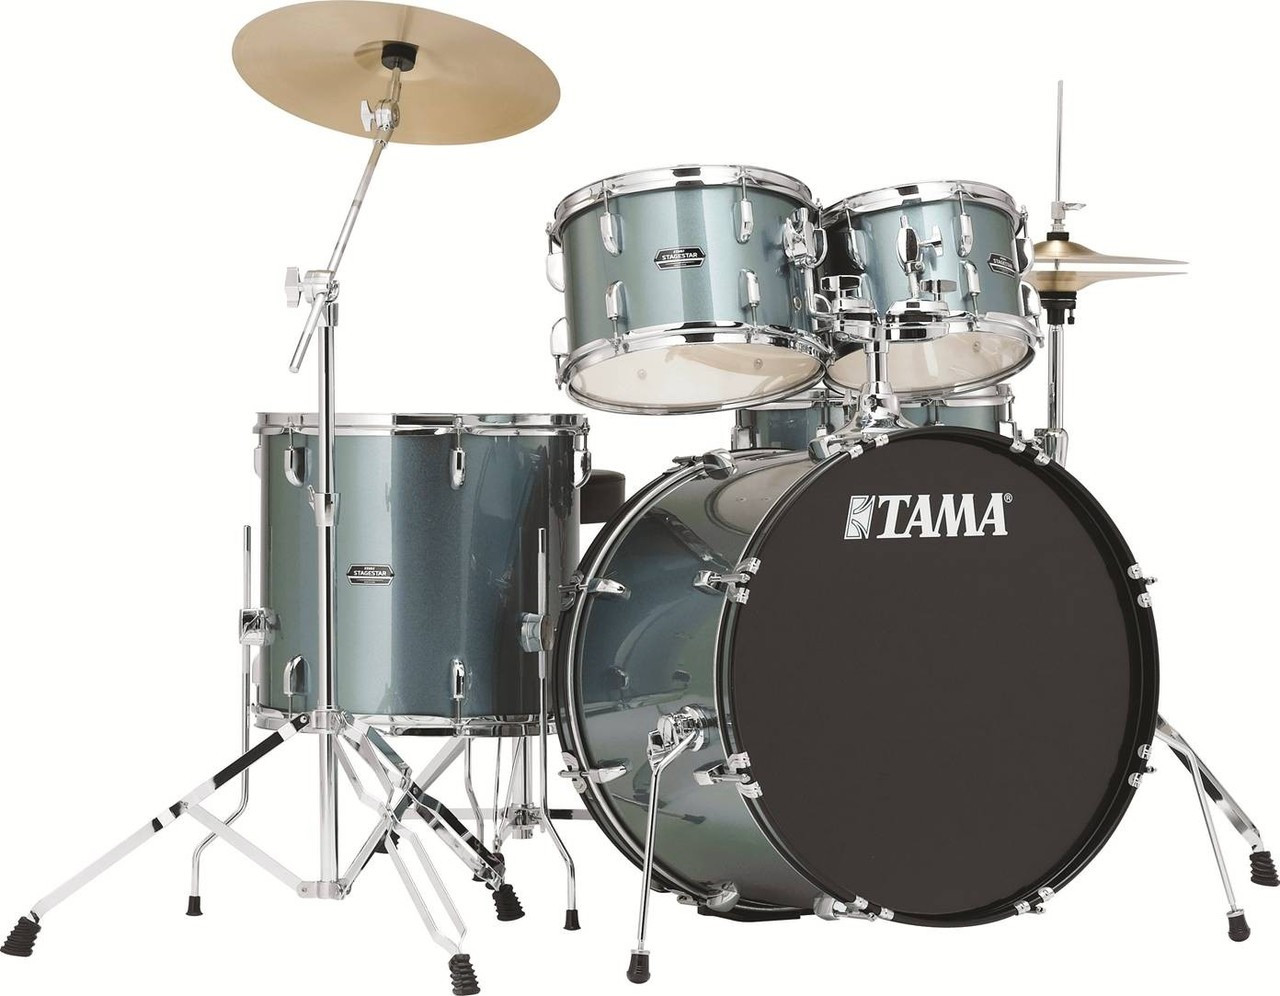 Tama Stagestar SG52KH5C CSV 5-Piece Drum Kit Charcoal Silver with Cymbal Set